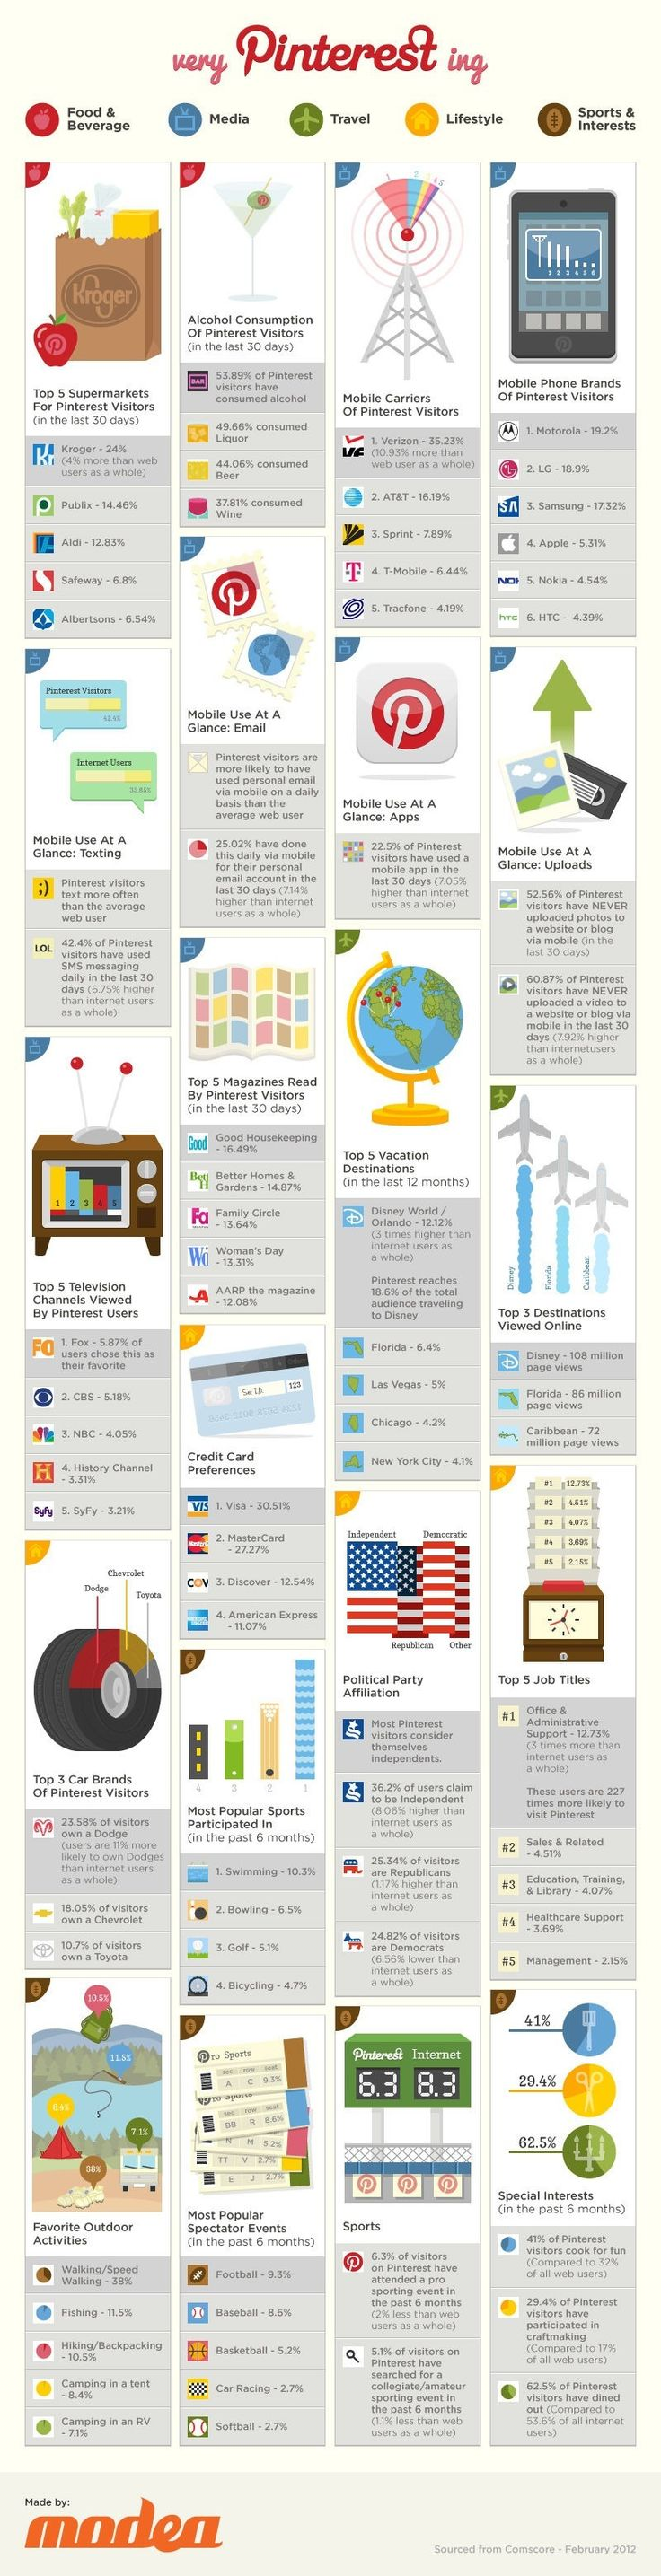 """Digital media agency Modea put together this infographic with findings from a February comScore report. It shows Pinterest users favorite supermarkets, mobile phones and carriers, alcohols, communication modes, magazines, vacation destinations, TV channels, credit cards, political parties, car brands, professions, outdoor activities, hobbies and sports."""